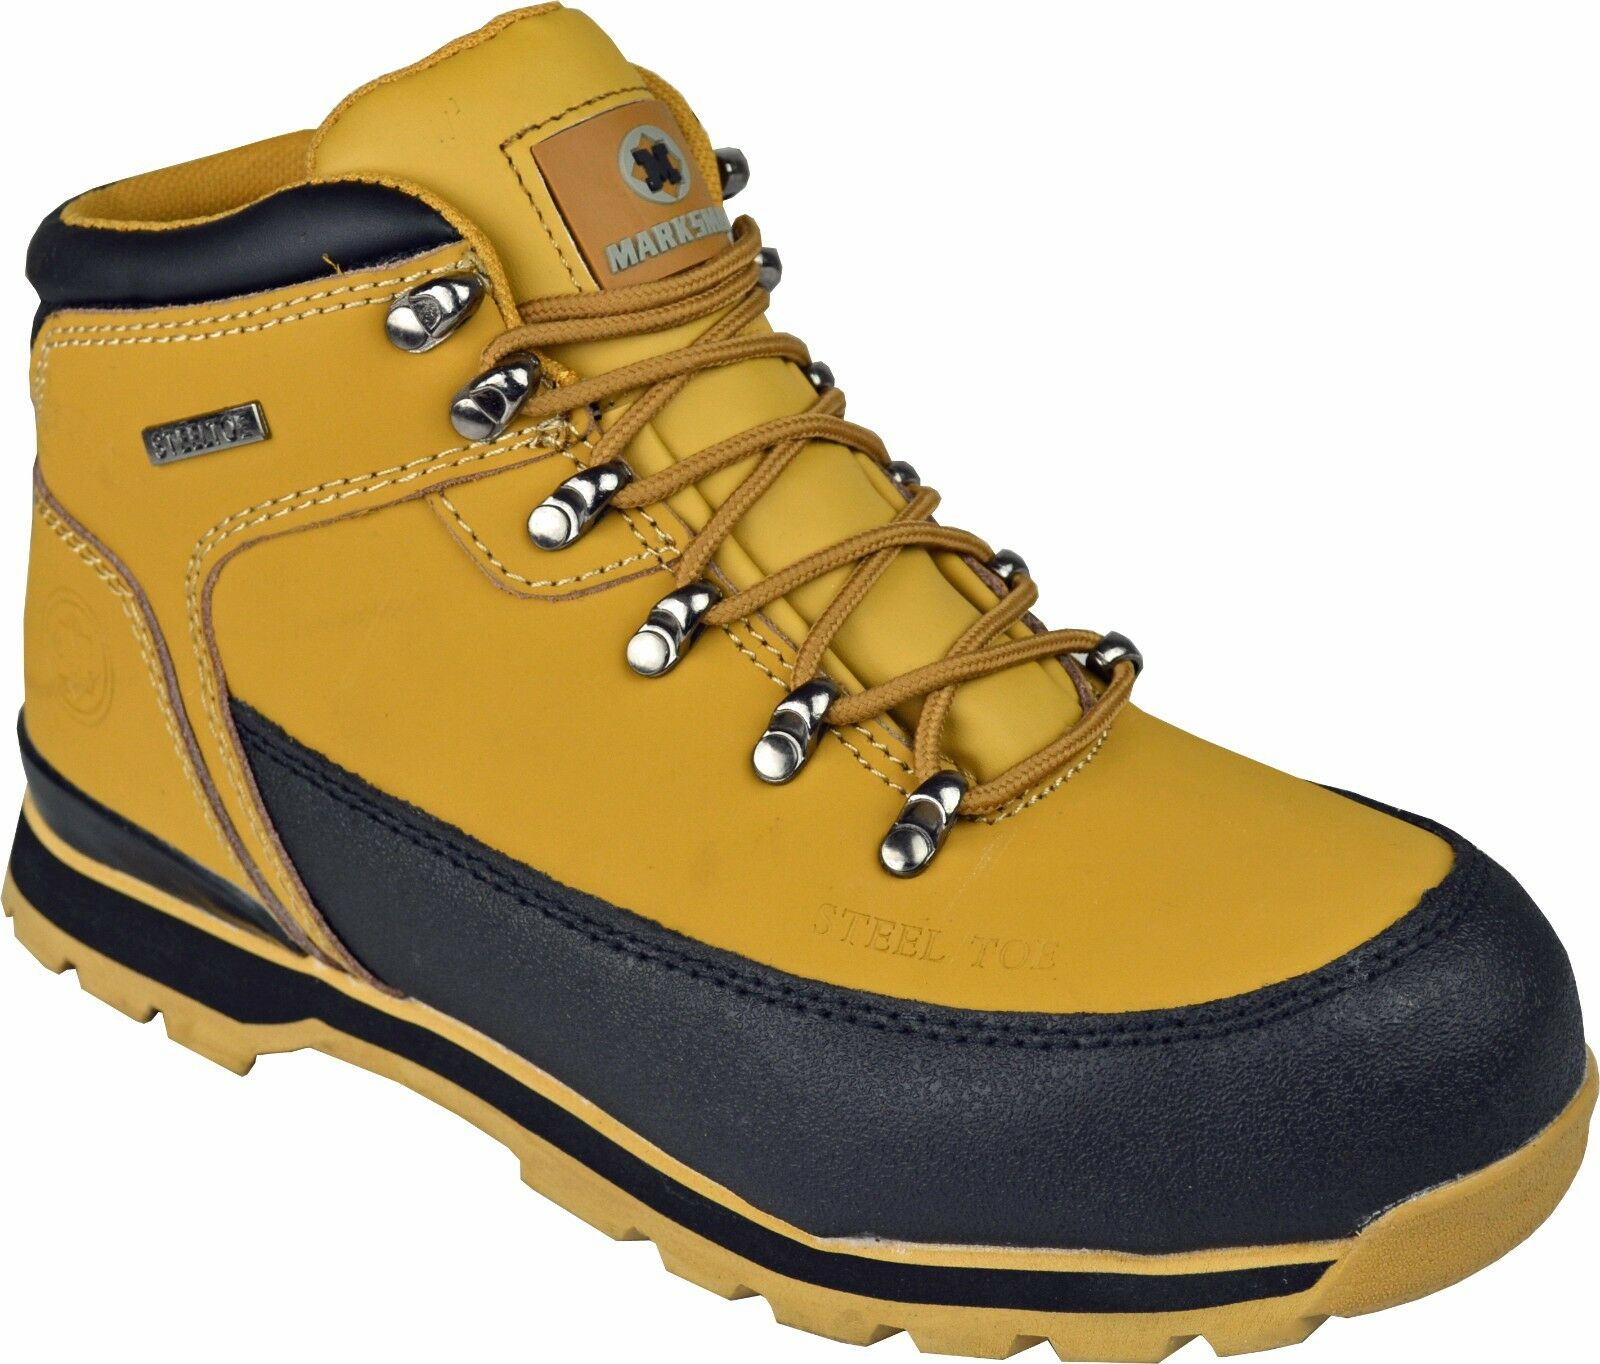 mens safety boots trainers shoes work steel toe cap. Black Bedroom Furniture Sets. Home Design Ideas